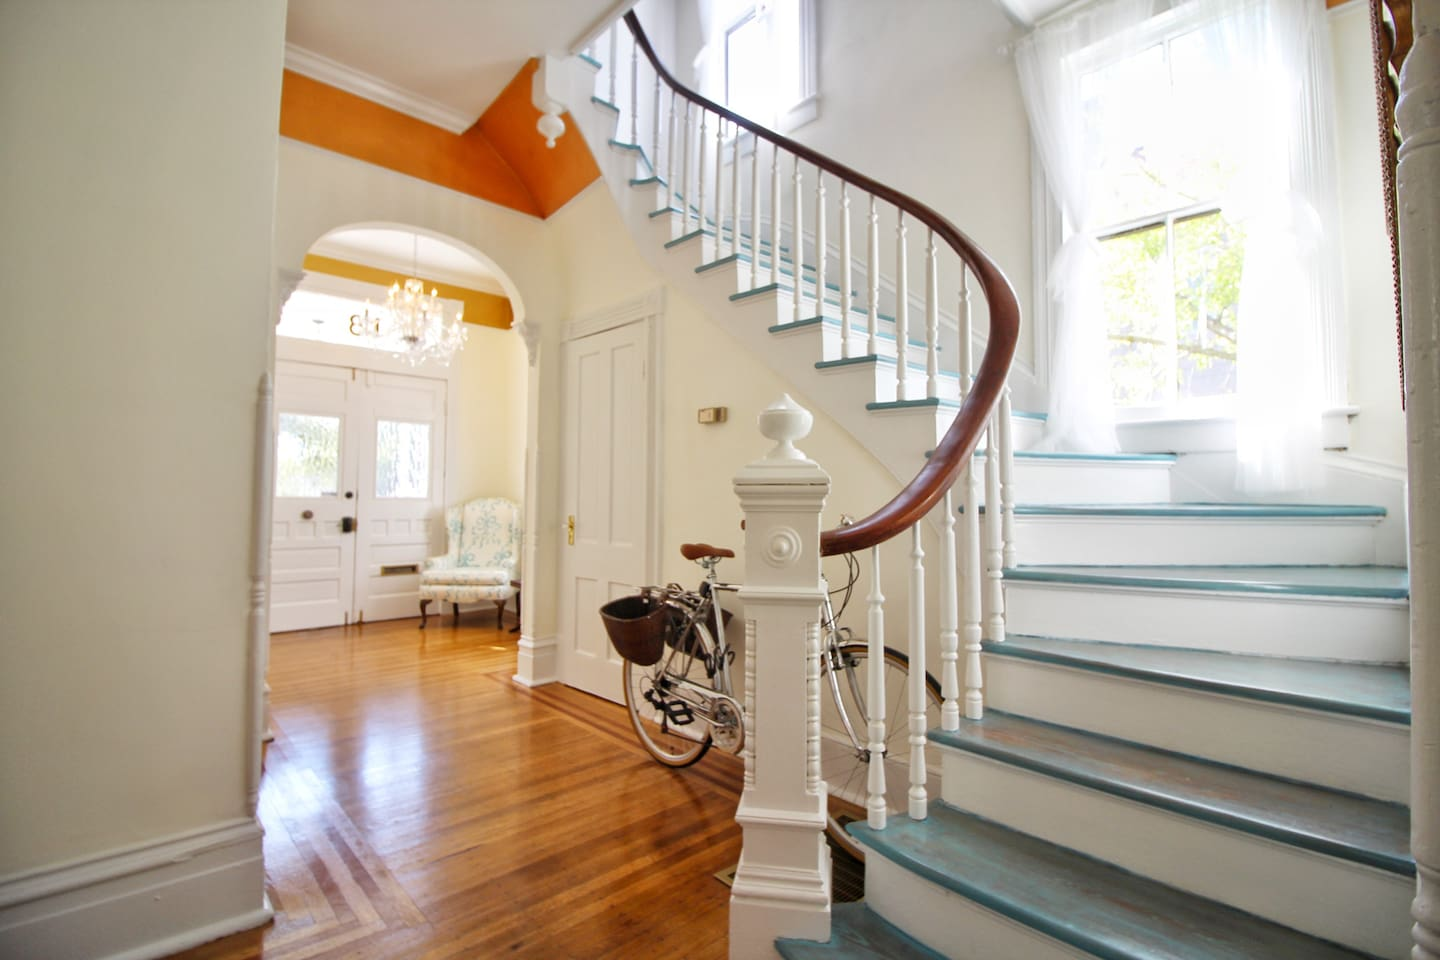 Up a winding stair case, full of natural light